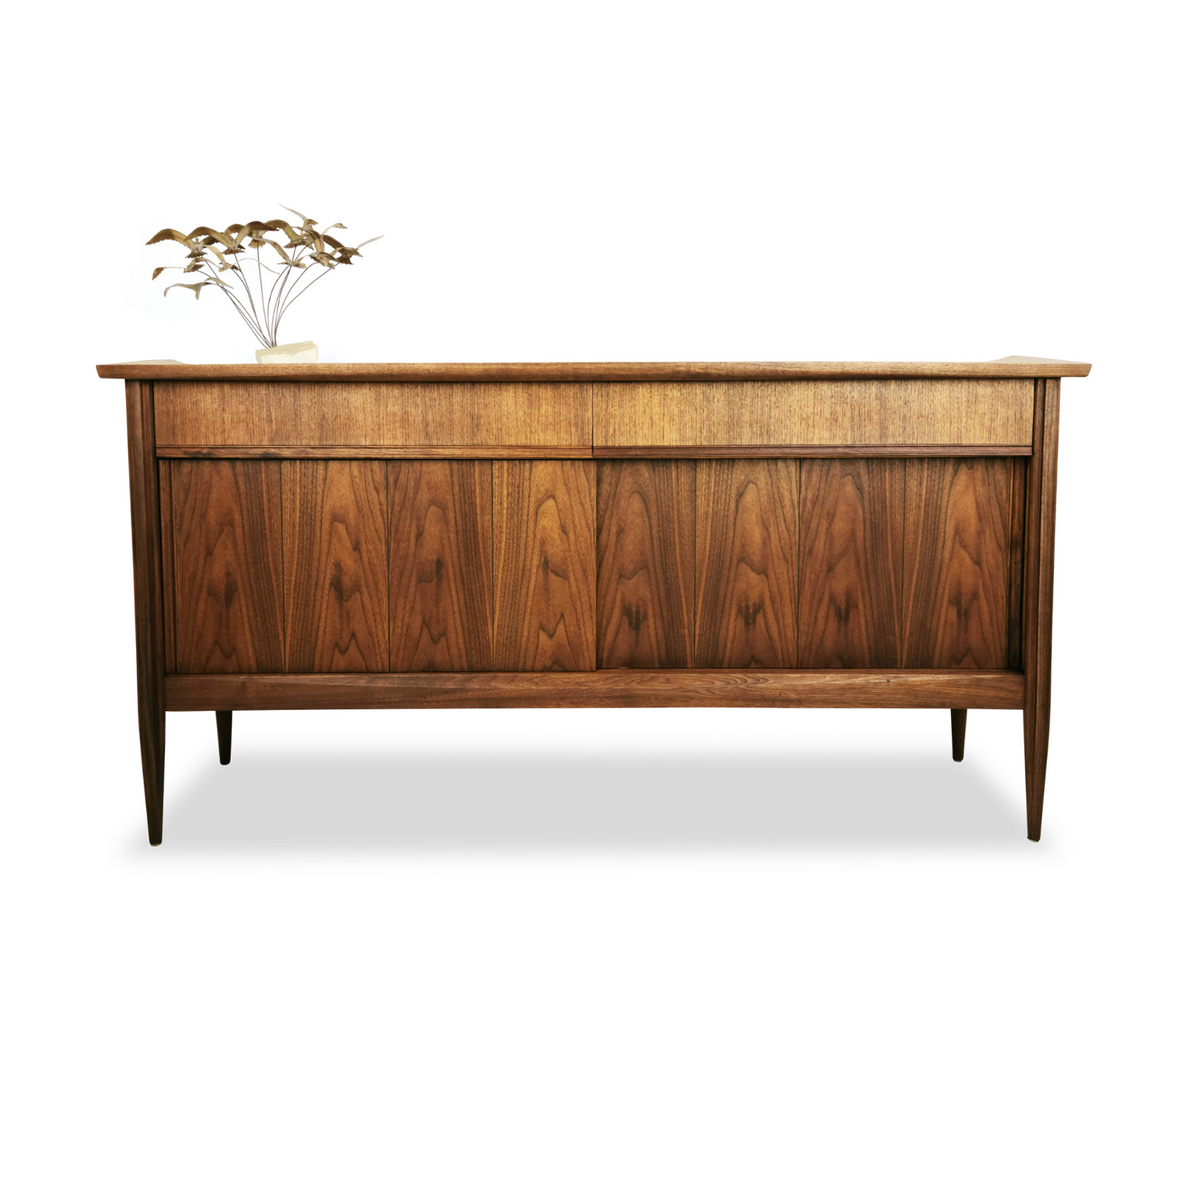 Vintage Walnut Sideboard by Deilcraft